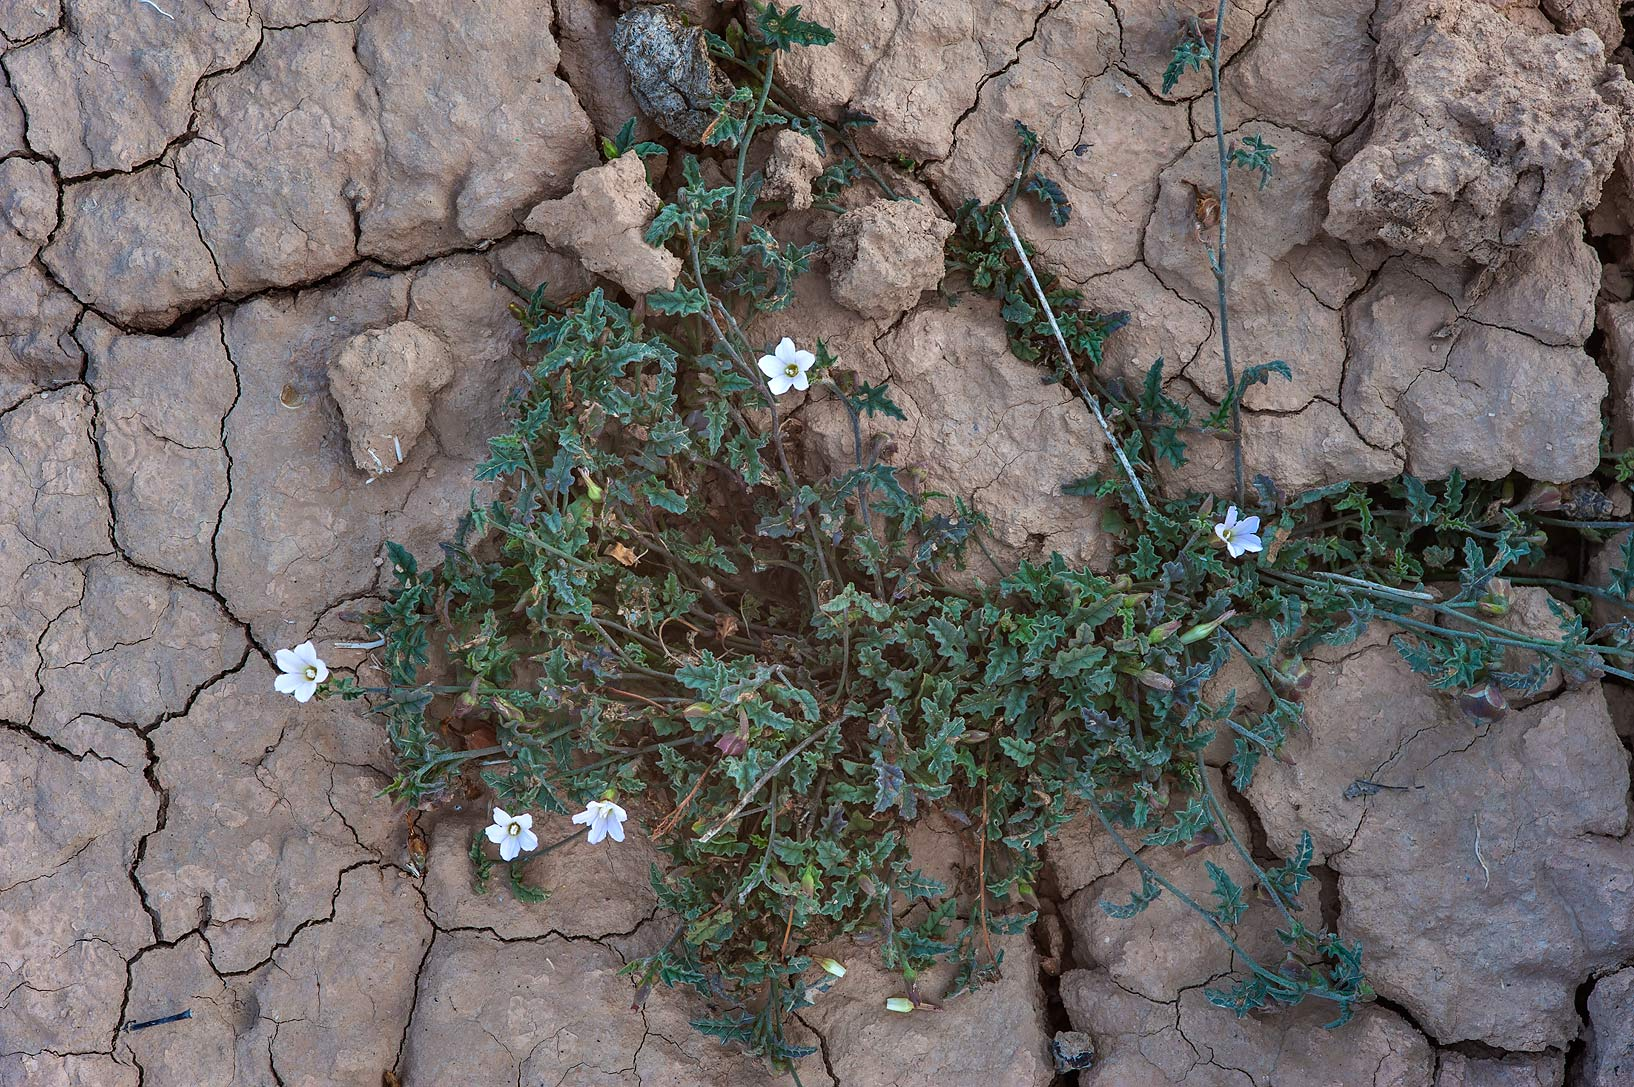 Blooming bindweed Convolvulus fatmensis in a...Nuaimiya) near Zubara. Northern Qatar